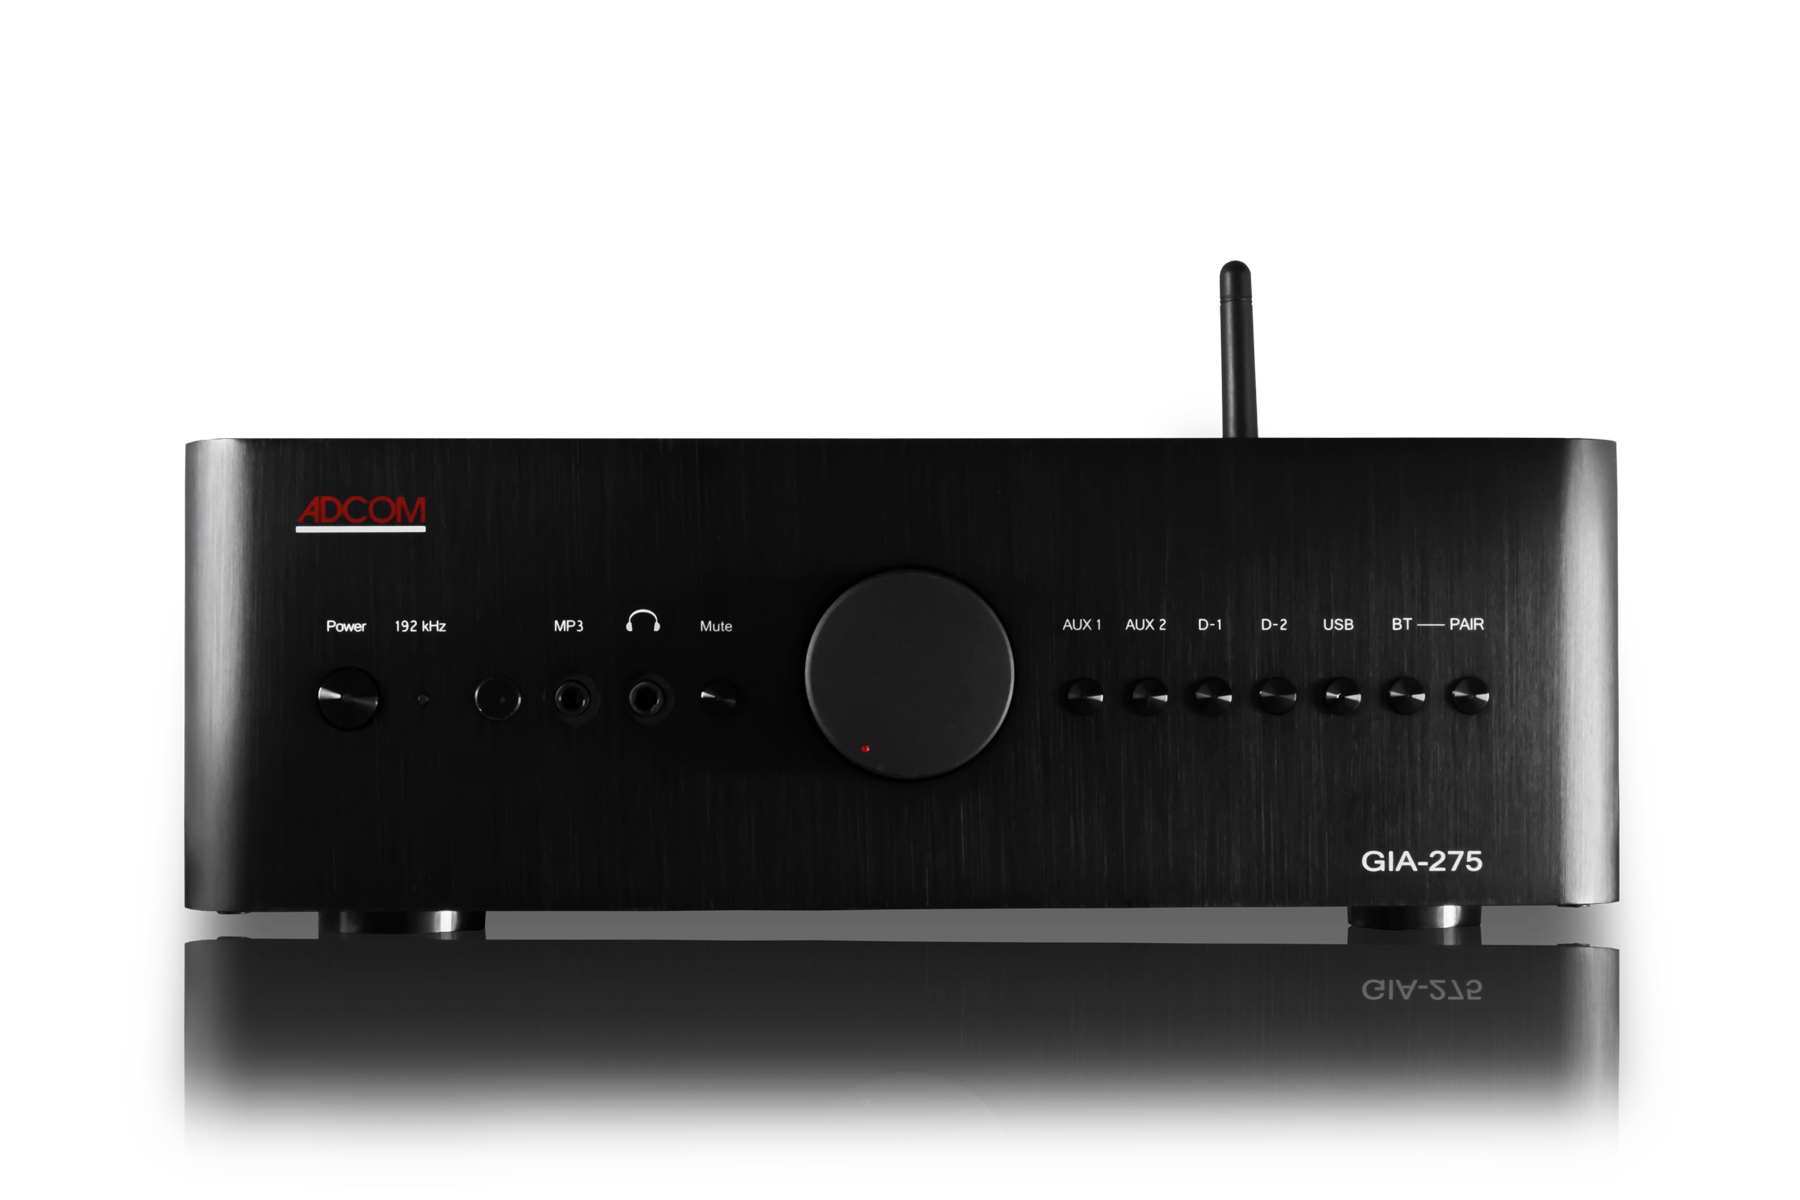 ADCOM High performance audio amplifiers, pre-amplifiers and